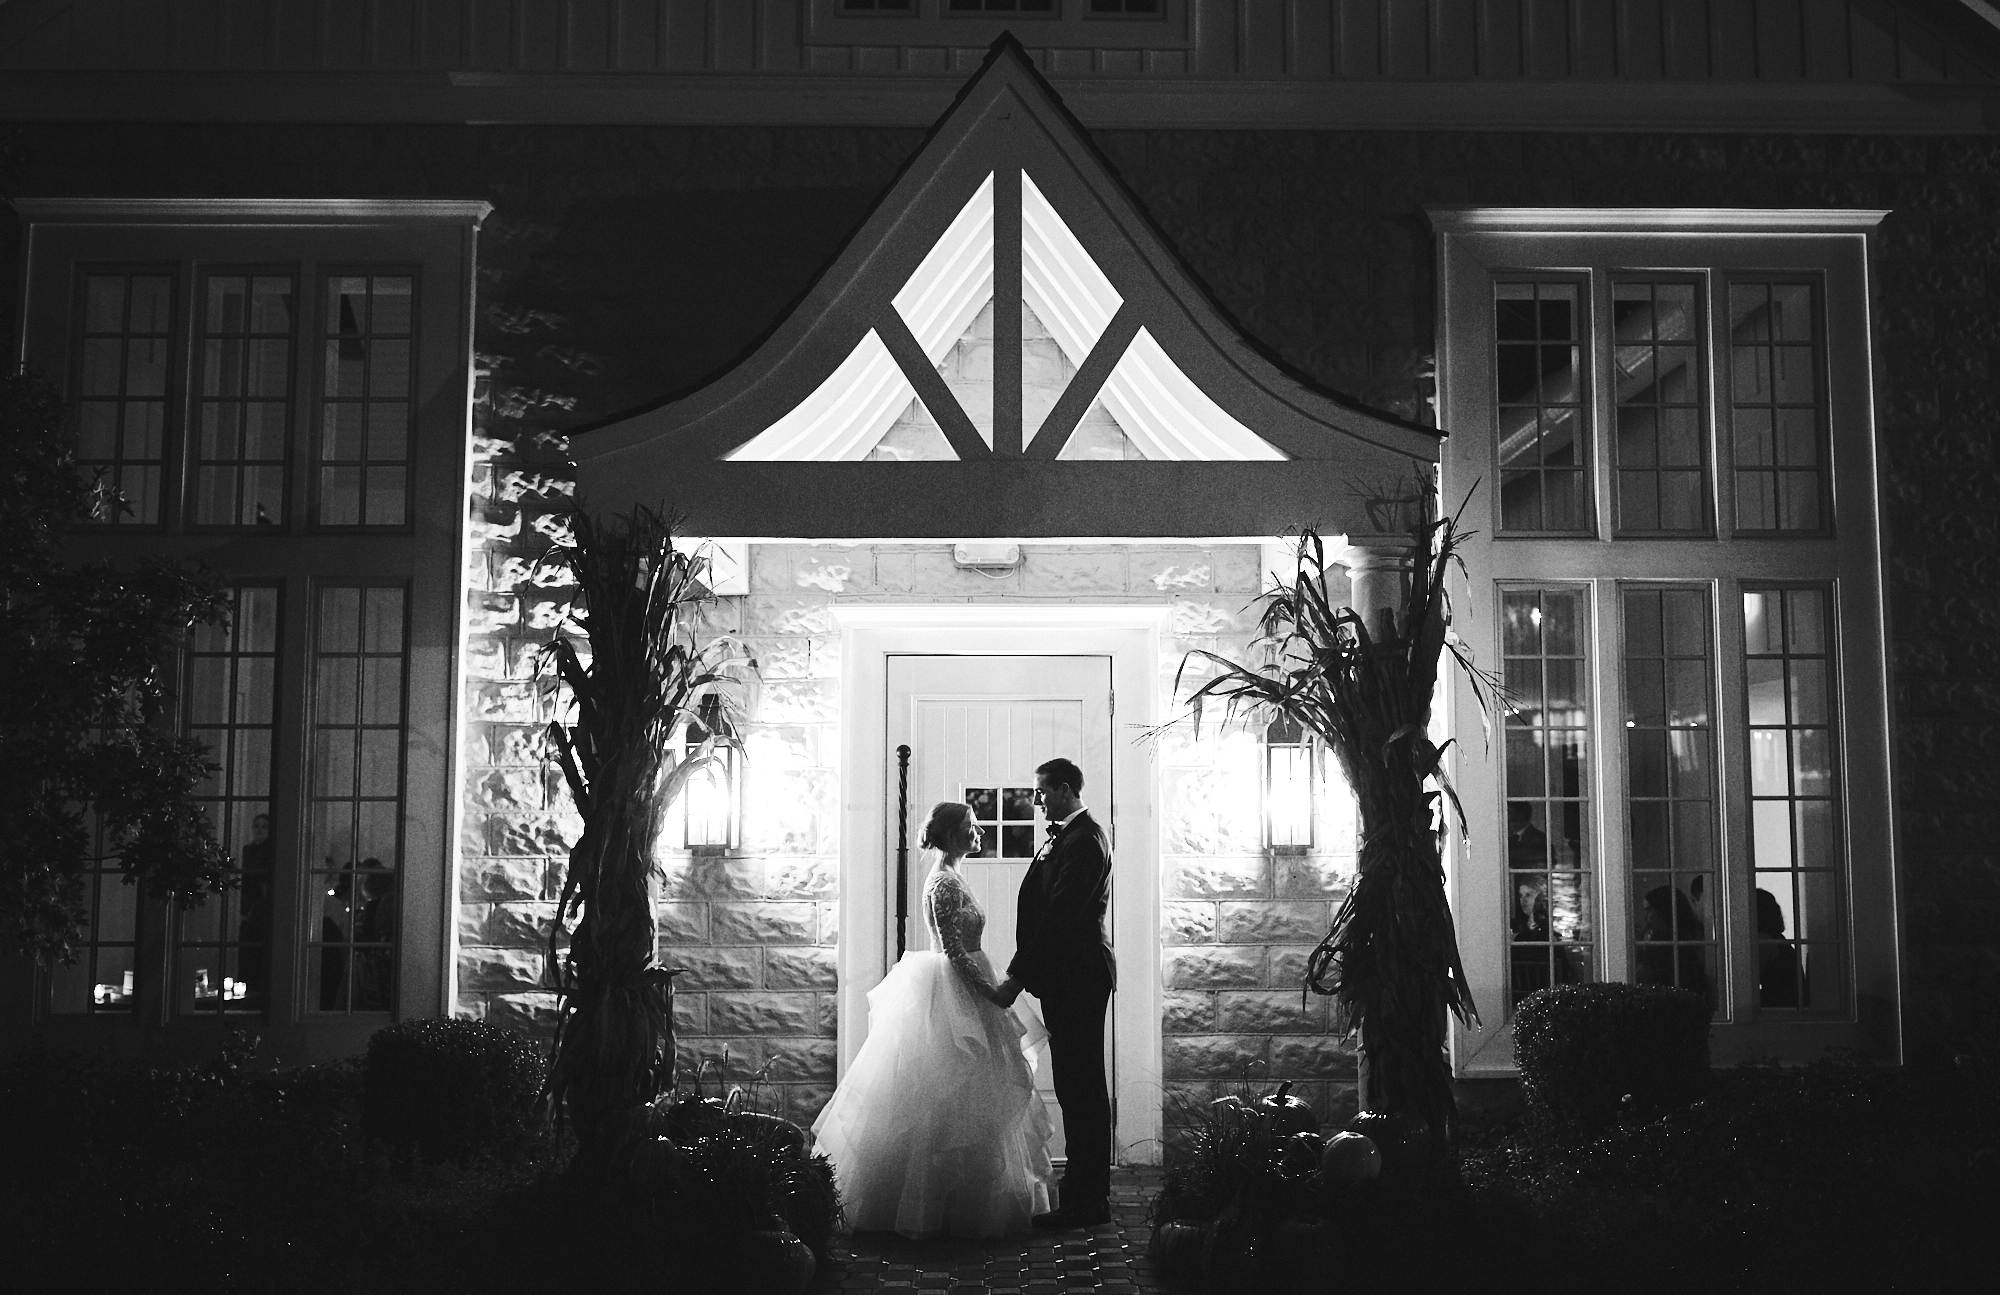 181027_TheRylandInnFallWeddingPhotography_NJWeddingPhotographer_By_BriJohnsonWeddings_0168.jpg